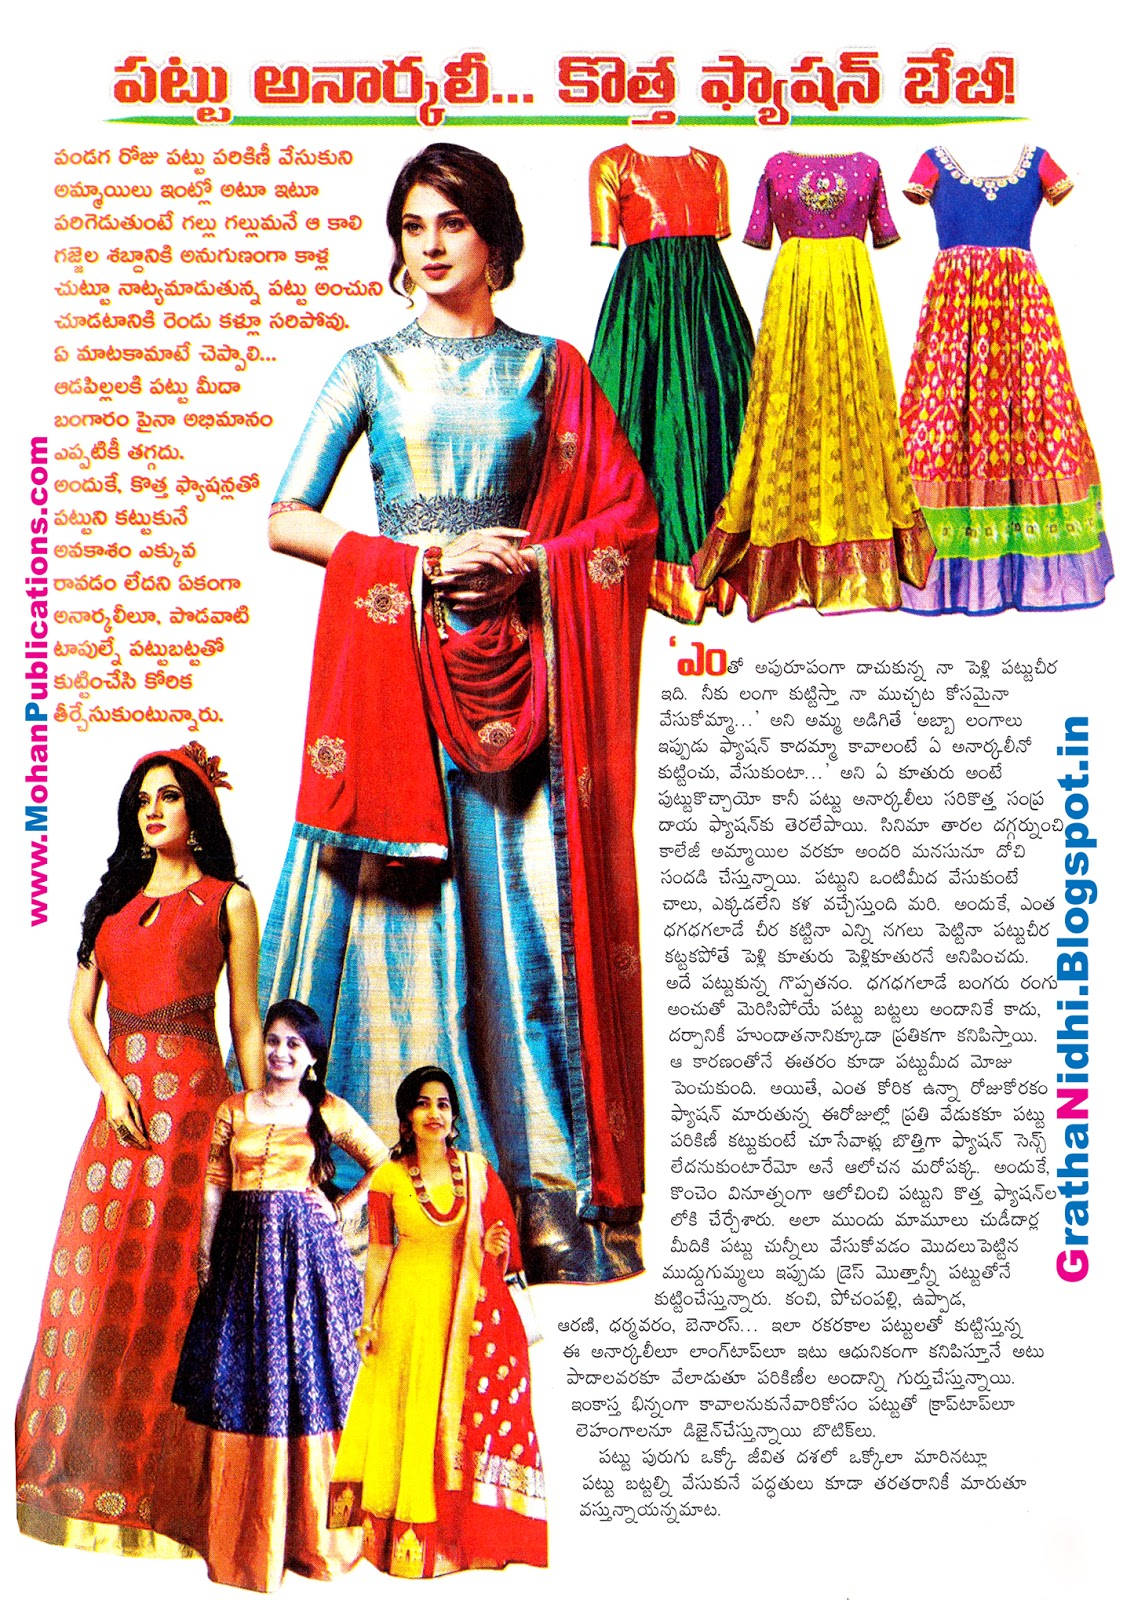 పట్టు అనార్కలీ ఫ్యాషన్ బేబి Pattu Anarkali Fashion Baby Pattu Anarkali Fashion Anarkali Dresses Eenadu Epaper Eenadu Sunday Magazine Eenadu Sunday Magazine Cover Story Bhakthi Pustakalu Bhakti Pustakalu BhakthiPustakalu BhaktiPustakalu